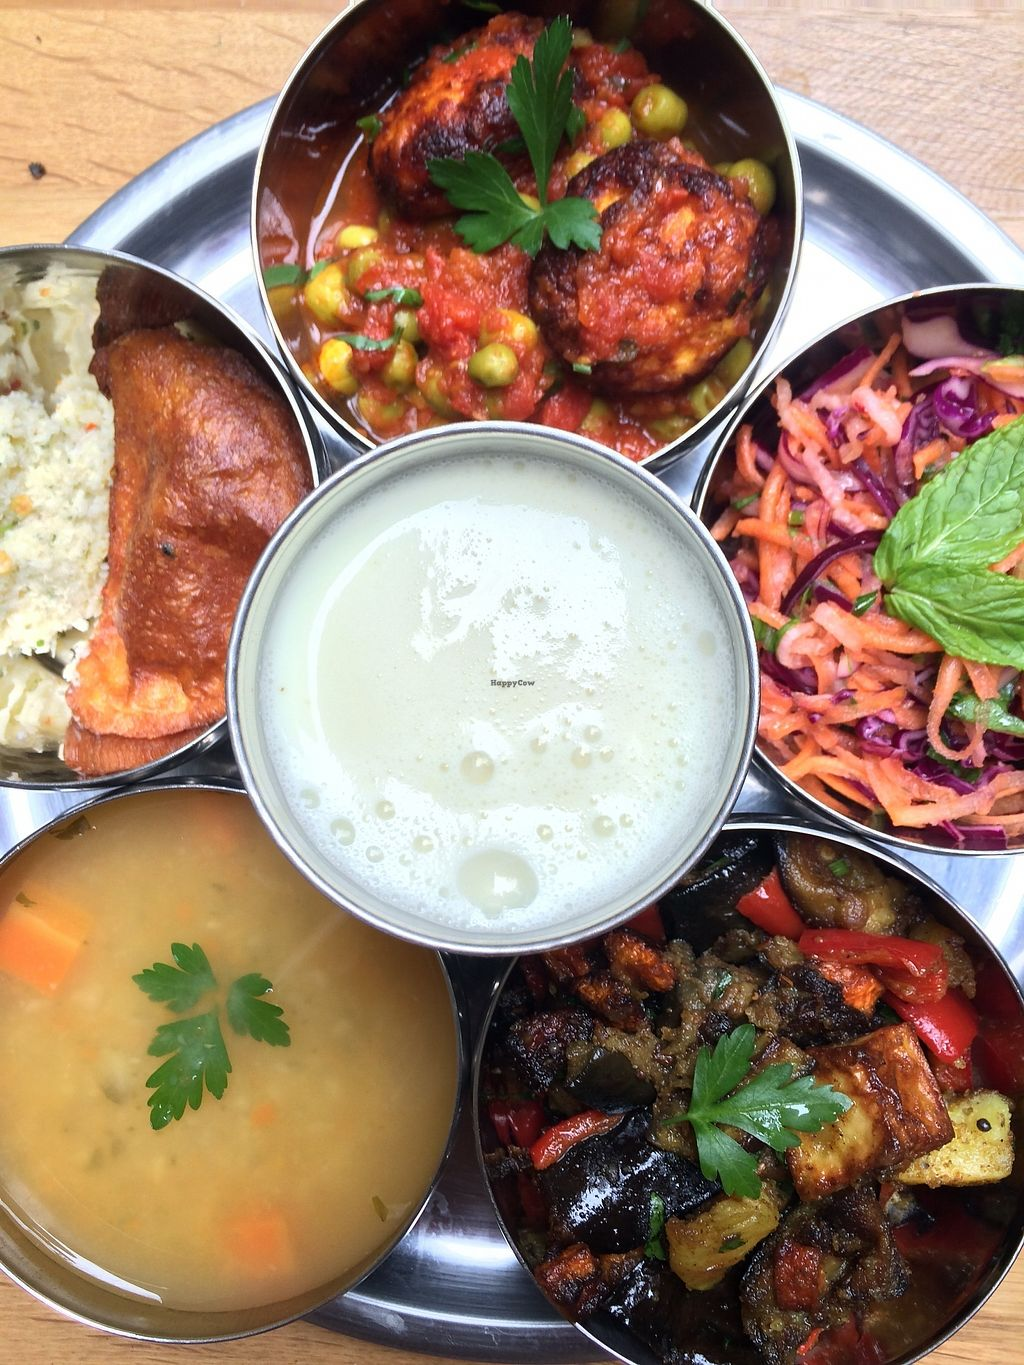 """Photo of Govinda Cafe - Mecidiyekoy  by <a href=""""/members/profile/govindaistanbul"""">govindaistanbul</a> <br/>Daily changing menu  <br/> March 29, 2018  - <a href='/contact/abuse/image/107187/377625'>Report</a>"""